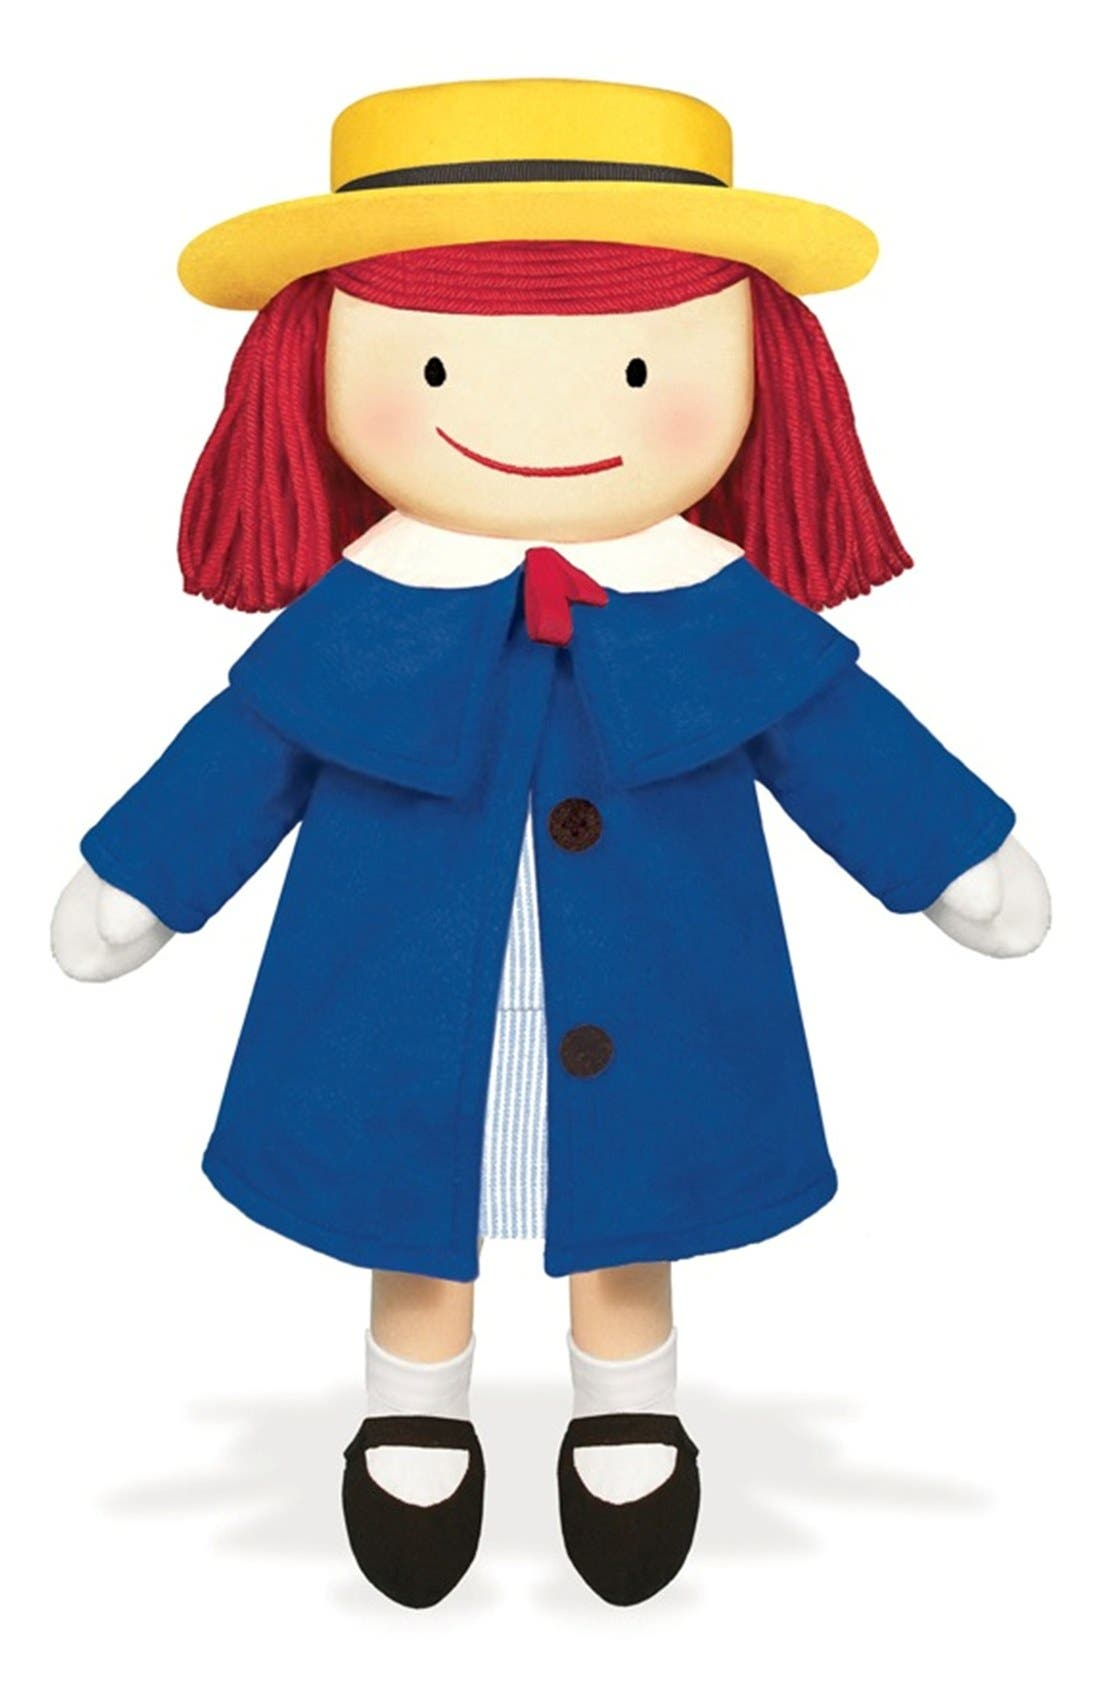 Madeline<sup>™</sup> Stuffed Doll,                         Main,                         color, Blue/ Yellow/ Red